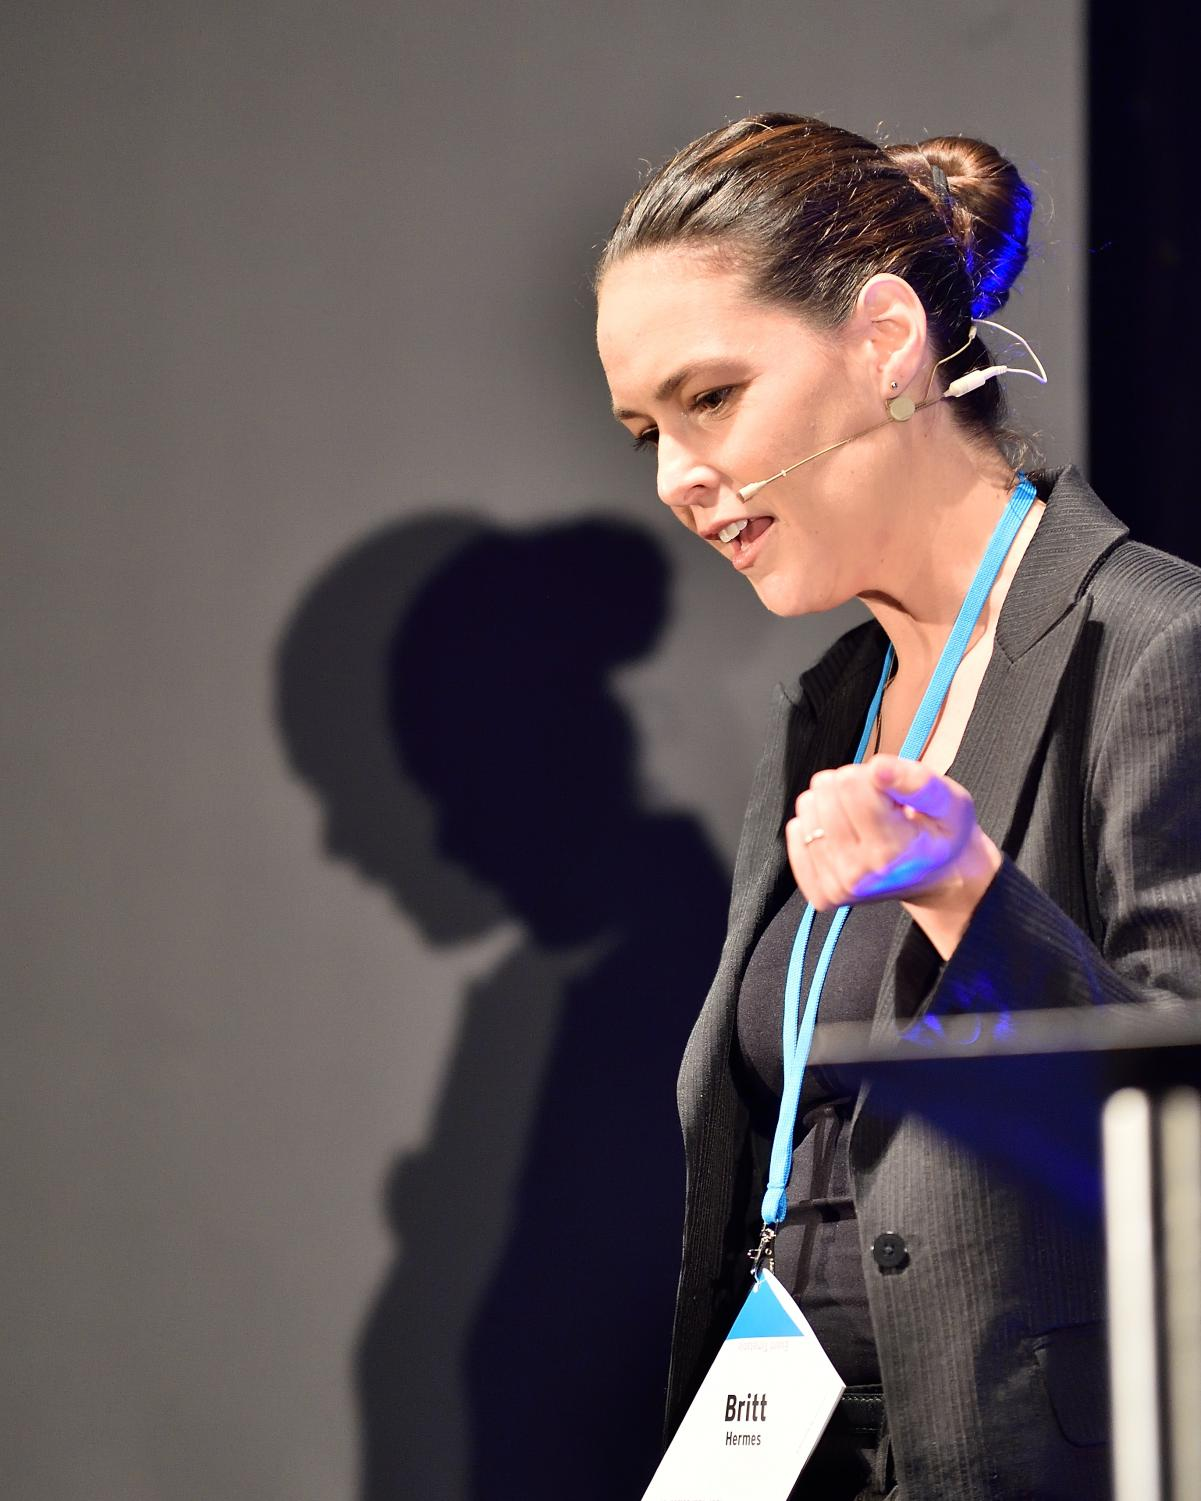 Britt Hermes gives a speech at the 2016 QED (Question, Explore, Discover